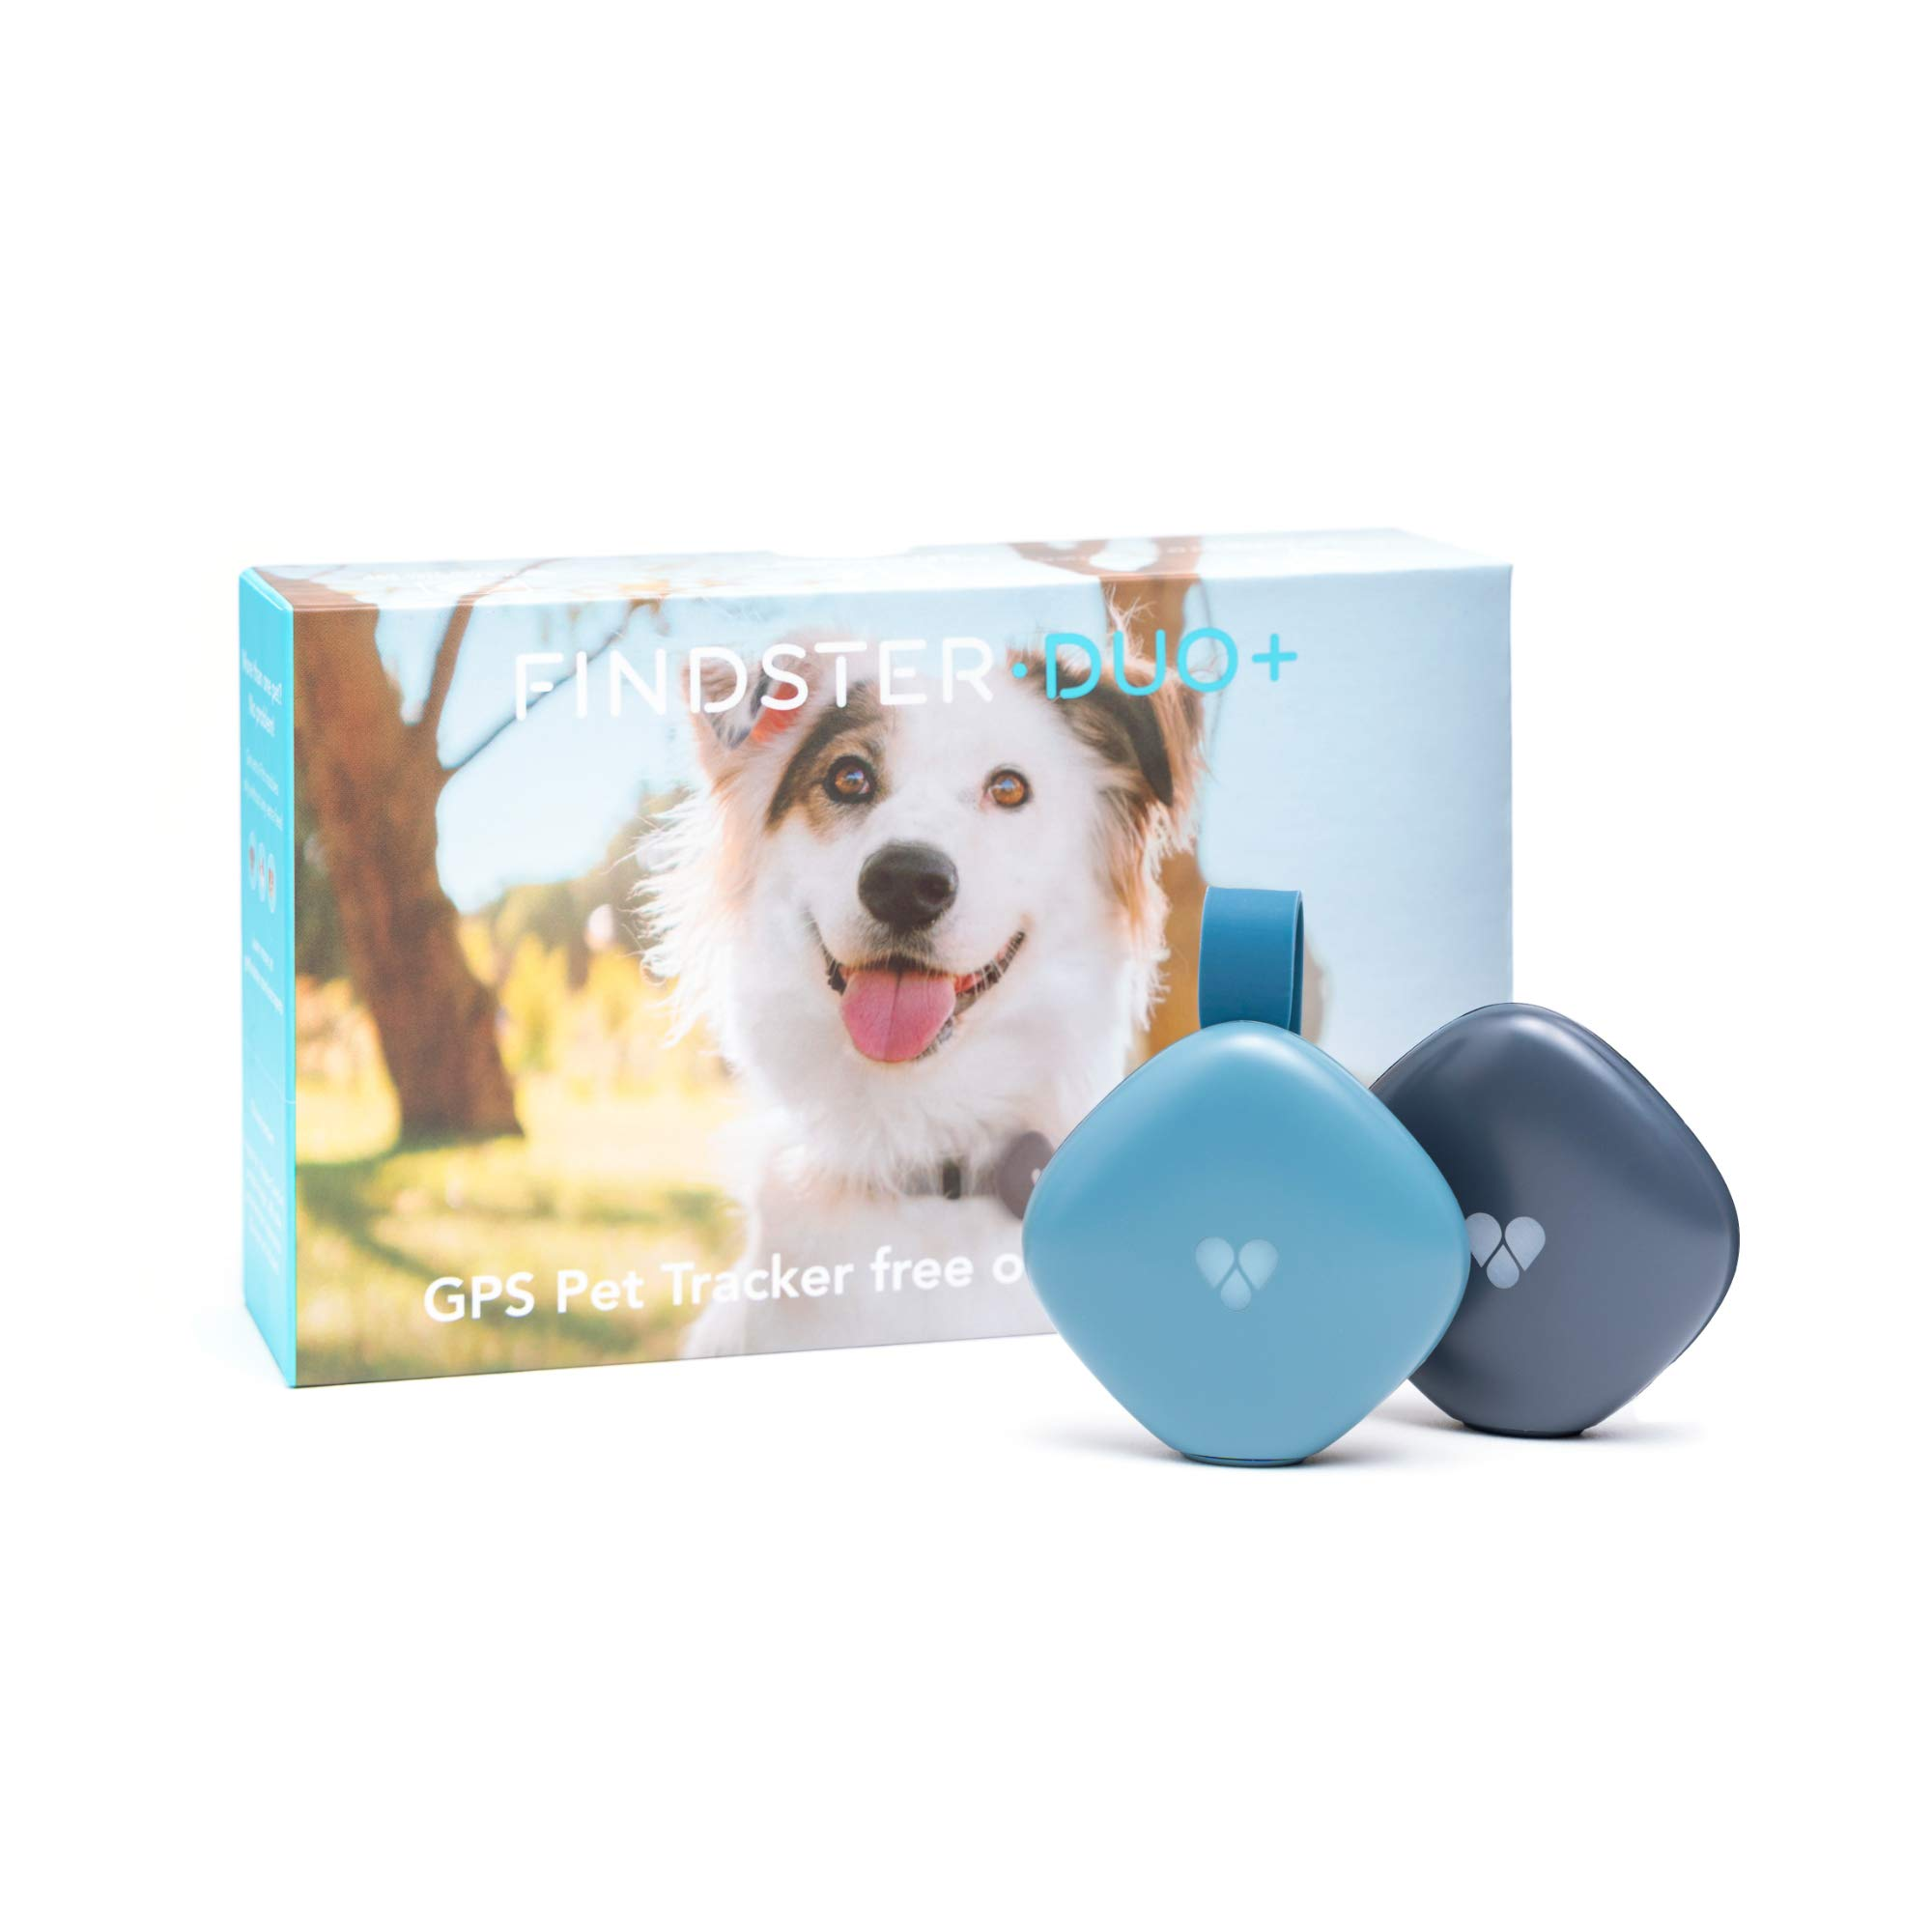 Findster Duo+ Pet Tracker Free of Monthly Fees - GPS Tracking Collar for Dogs and Cats & Pet Activity Monitor by Findster